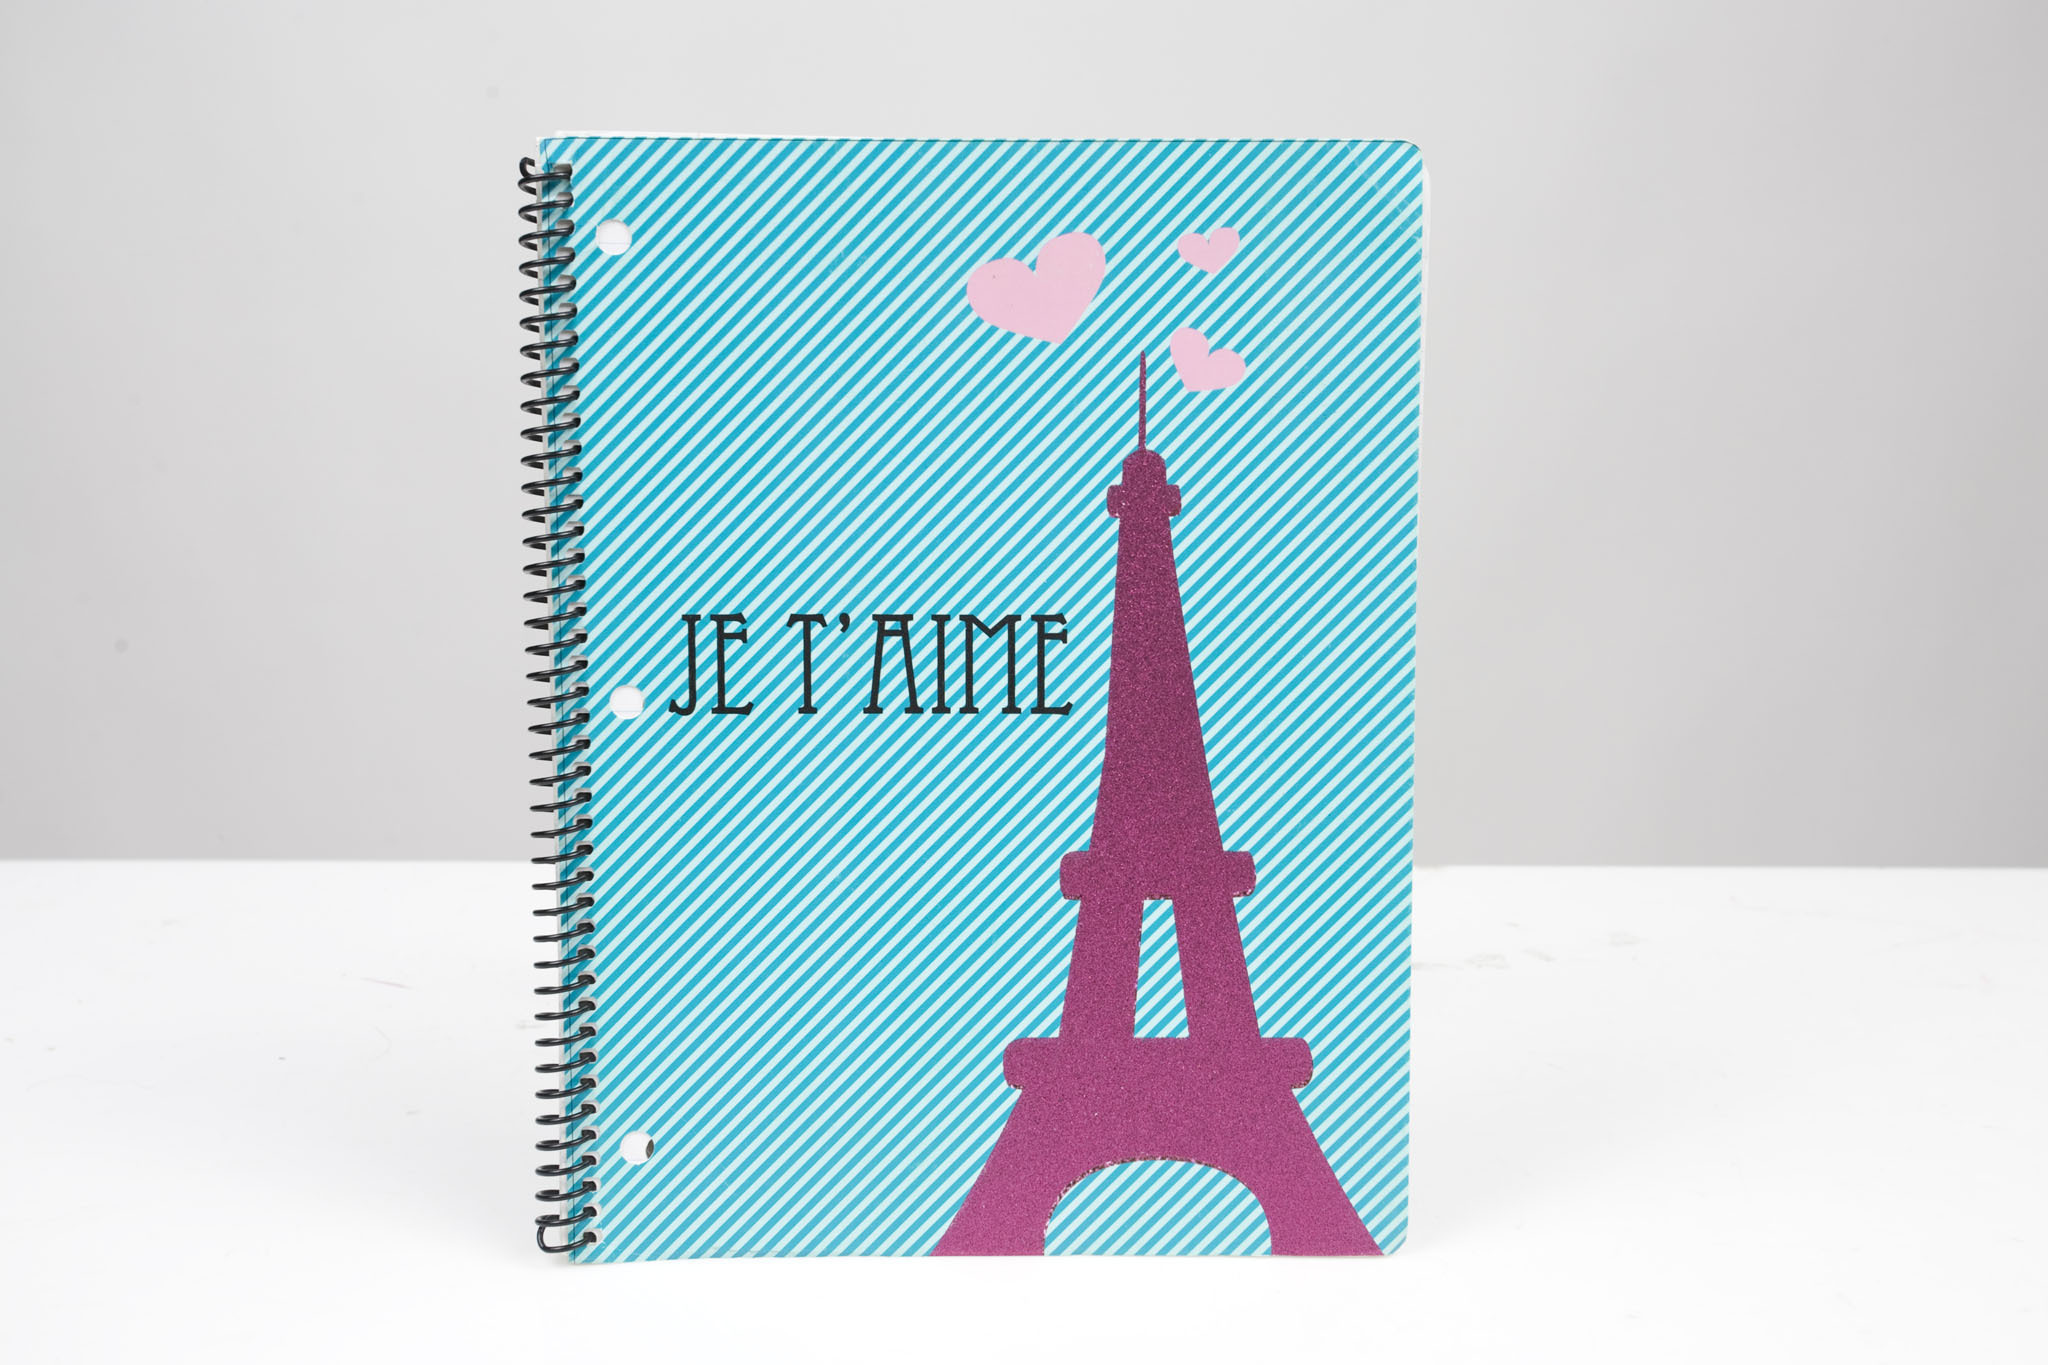 Back-to-school supplies: Cool school notebooks for kids